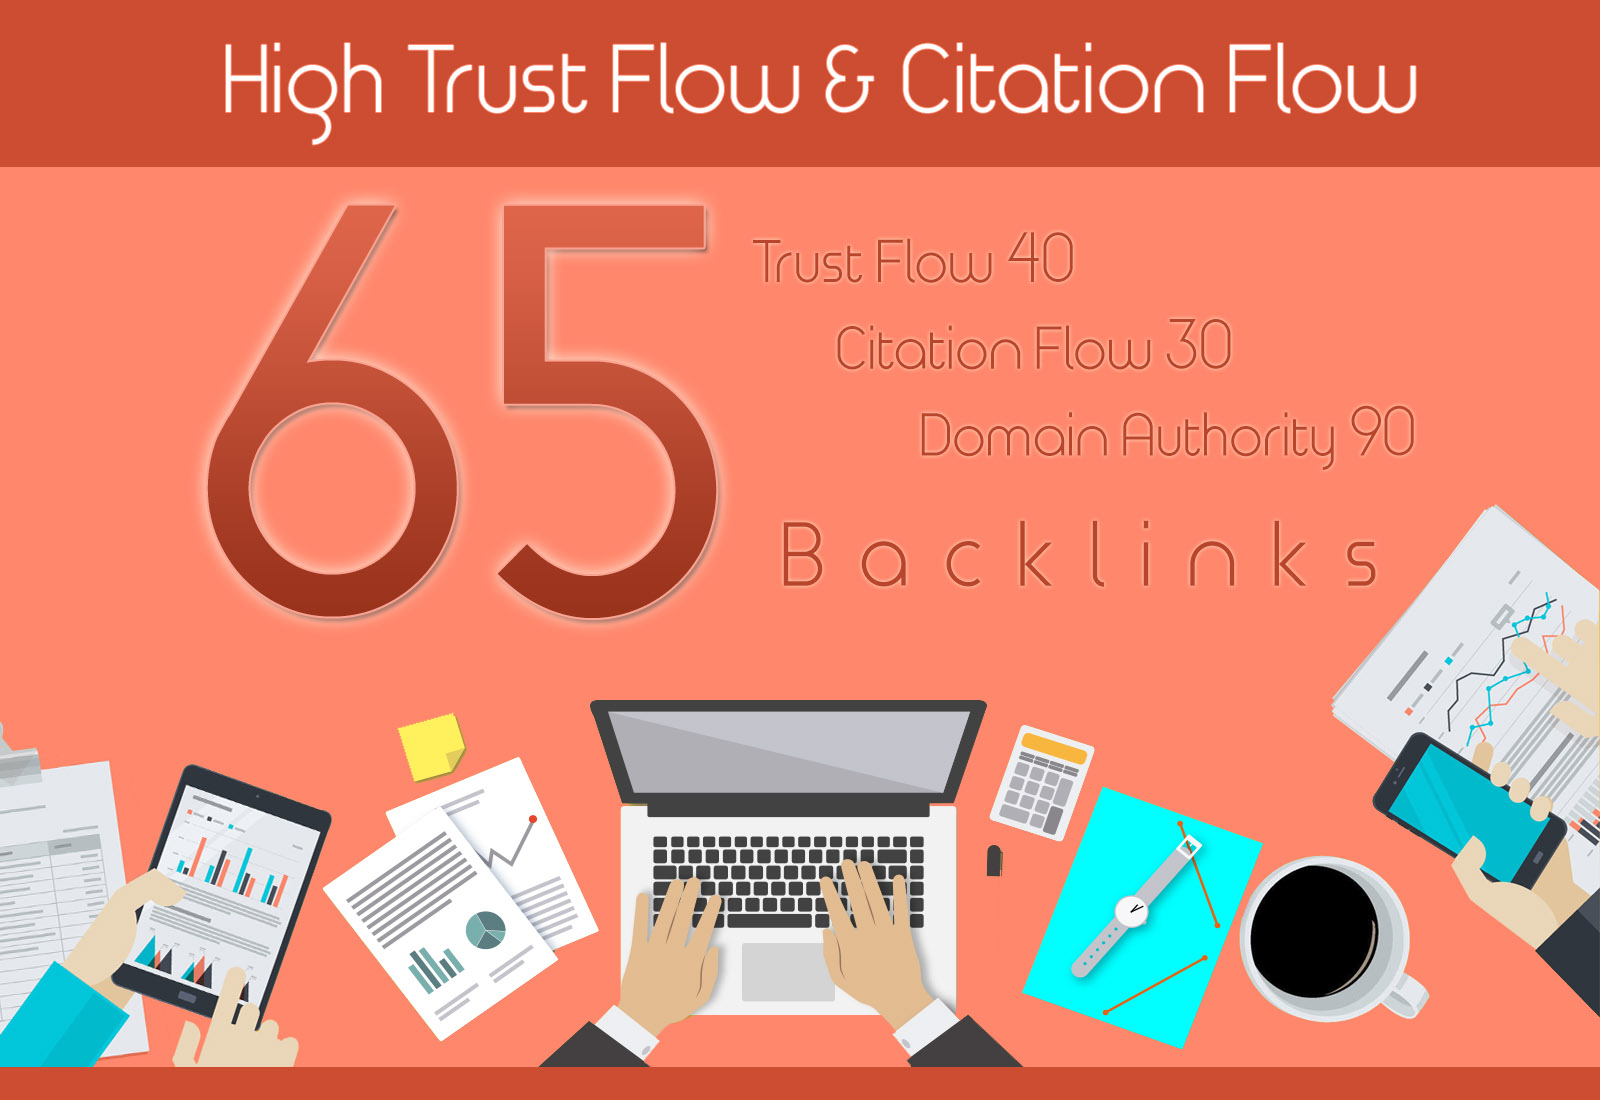 I Will Create 65 High Trust Flow And Citation Flow Backlinks On High DA